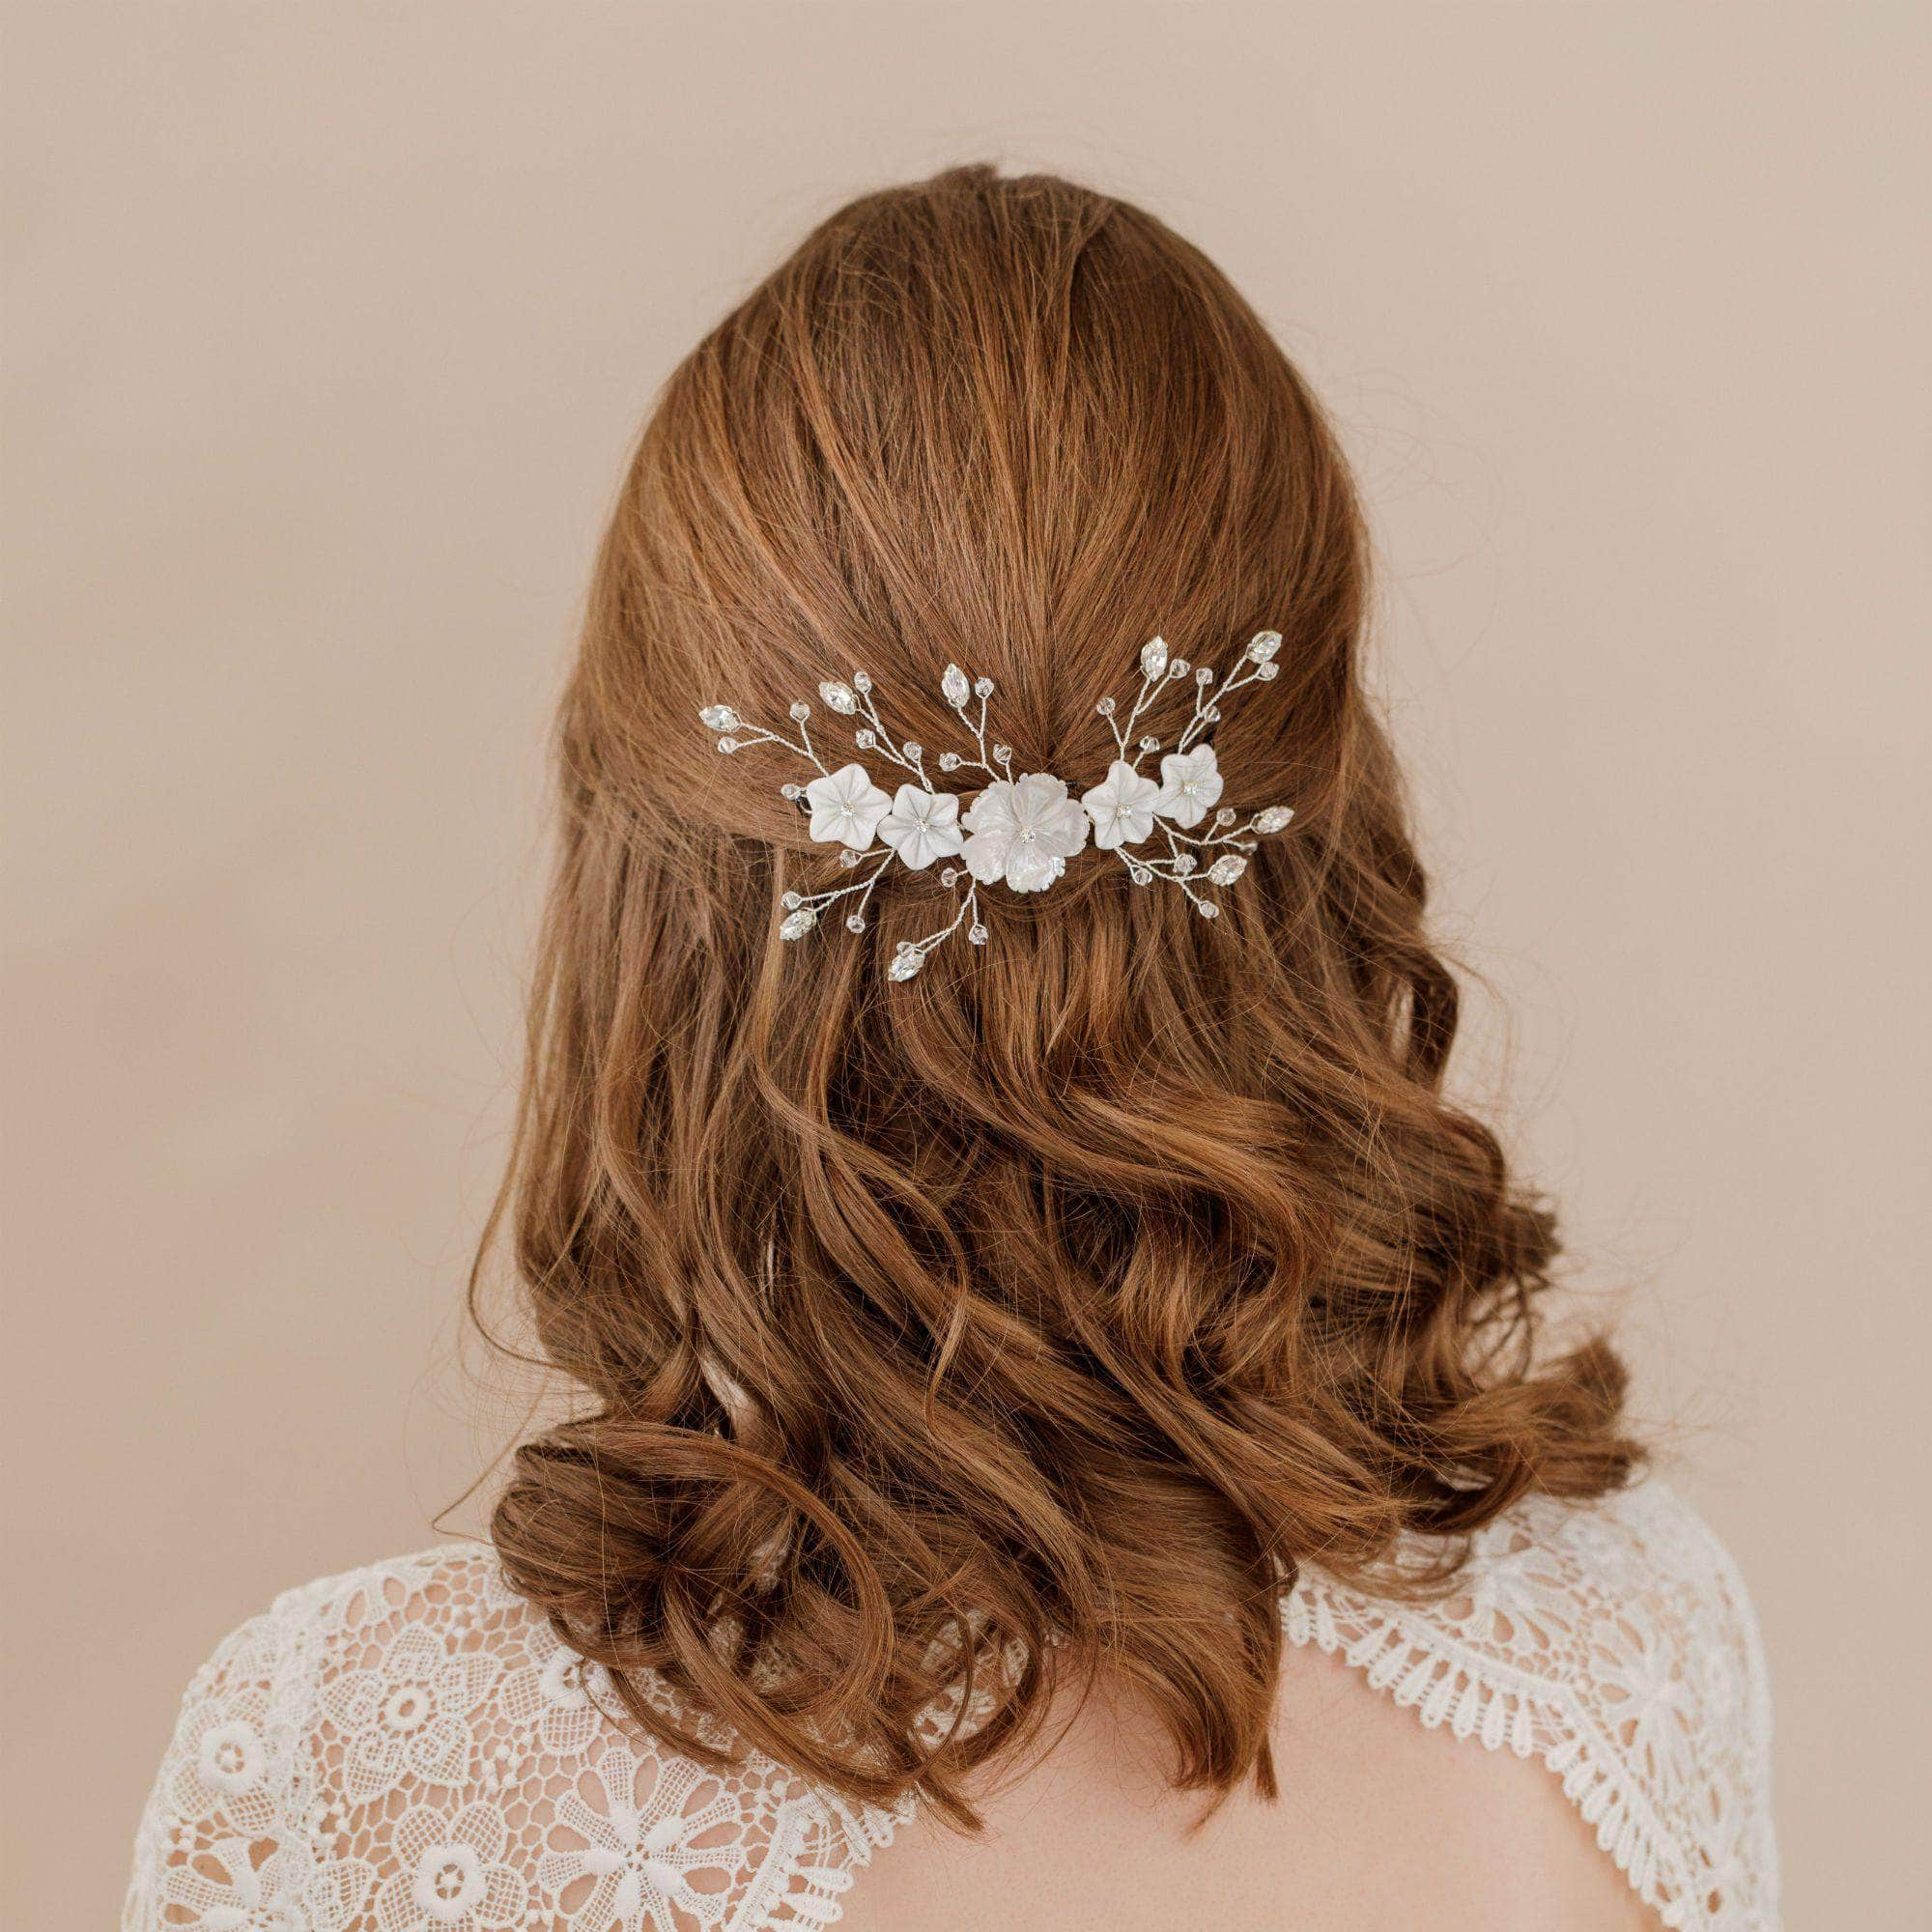 Wedding Hairvine Gold floral hair centrepiece - 'Jaime'